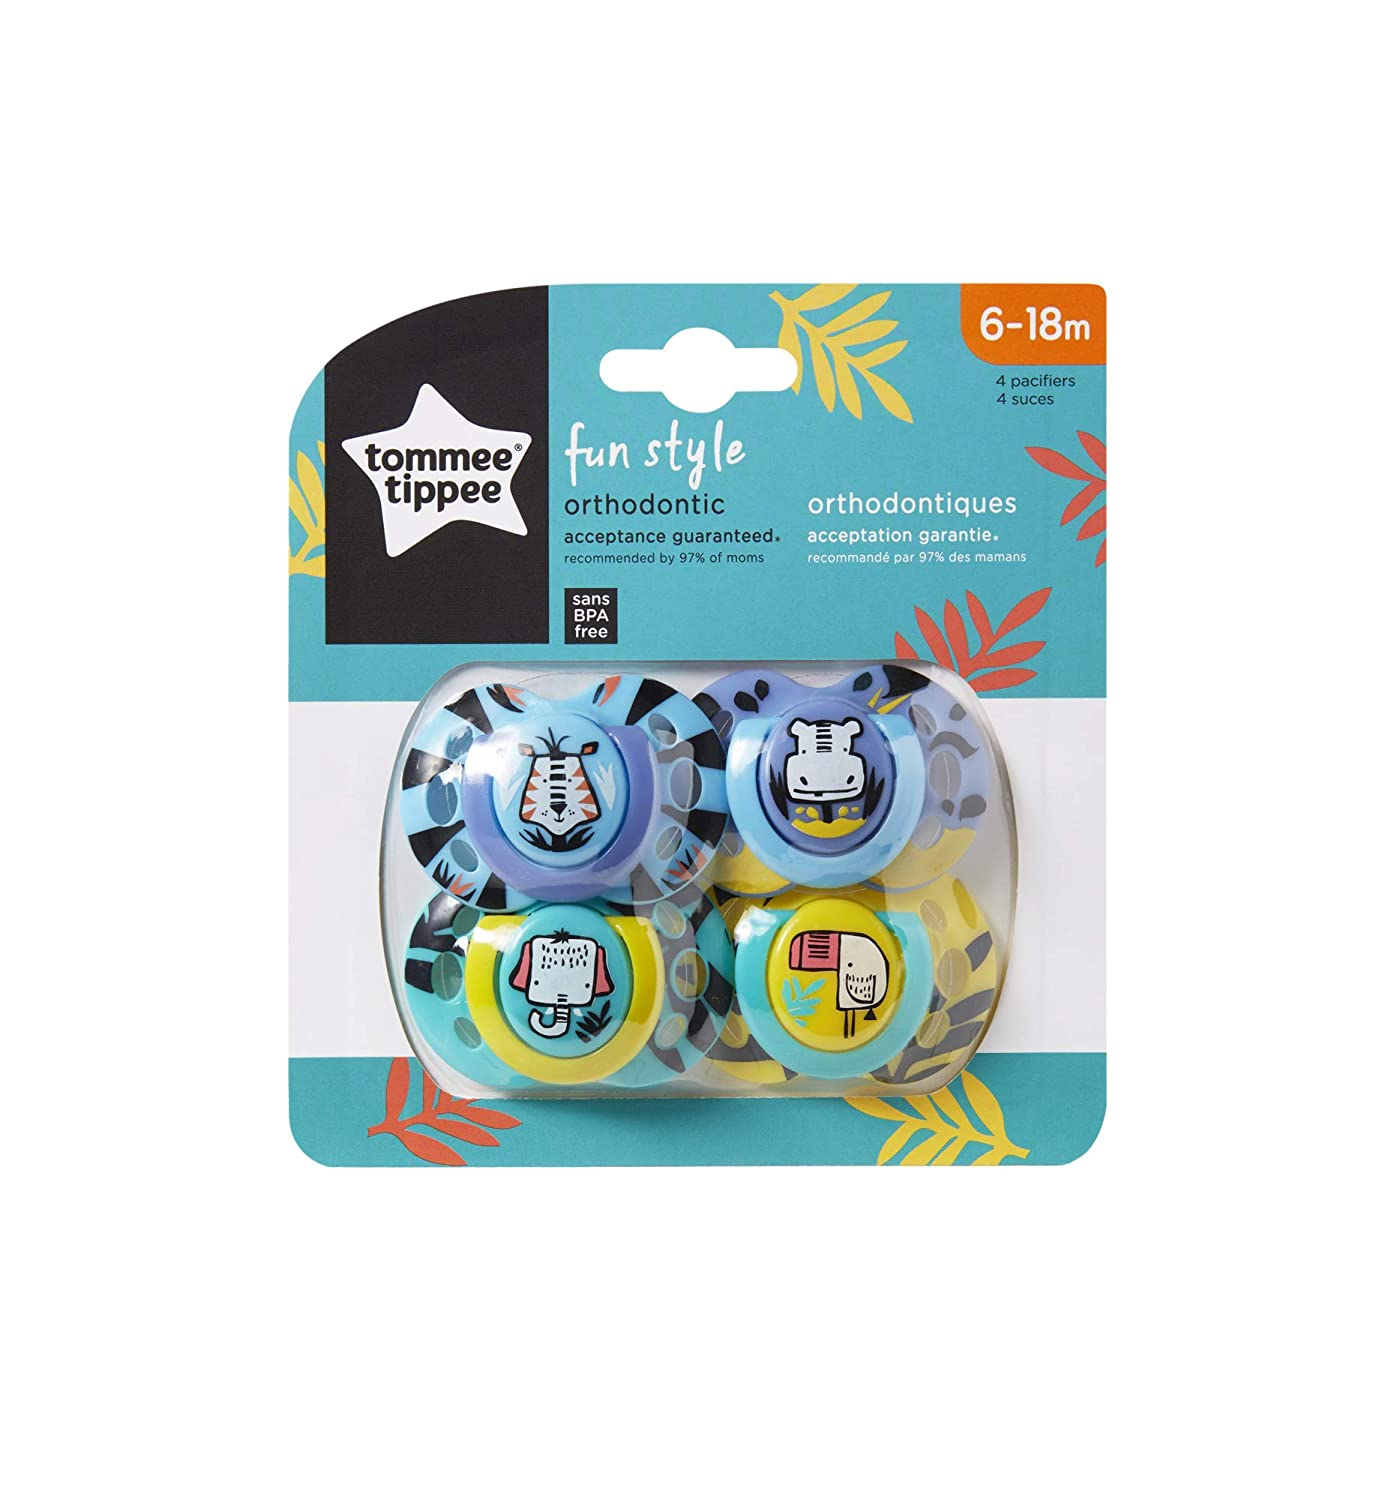 Tommee Tippee Closer to Nature Fun Style Baby Pacifier, 6-18m - 4 Count, Multi-Colored